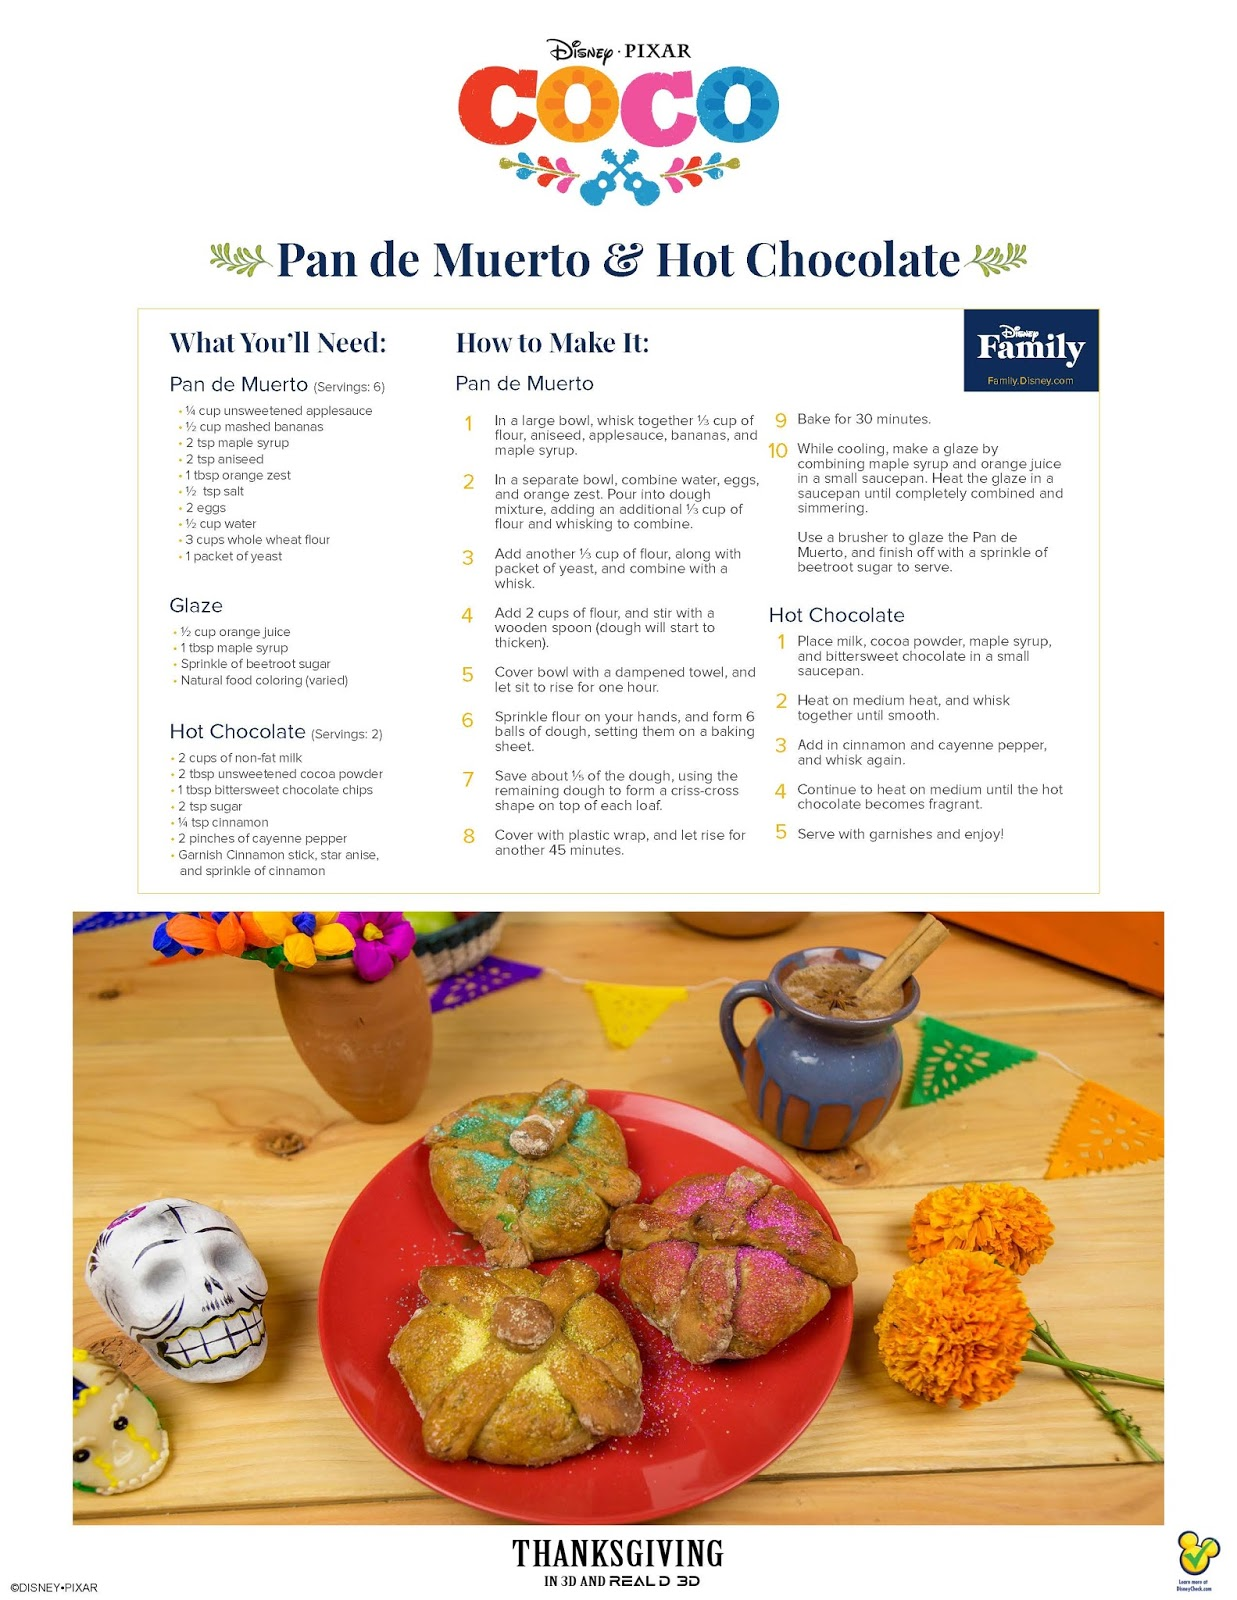 Pan de Muerto & Hot Chocolate Recipe Inspired by Disney/Pixar Coco  via  www.productreviewmom.com